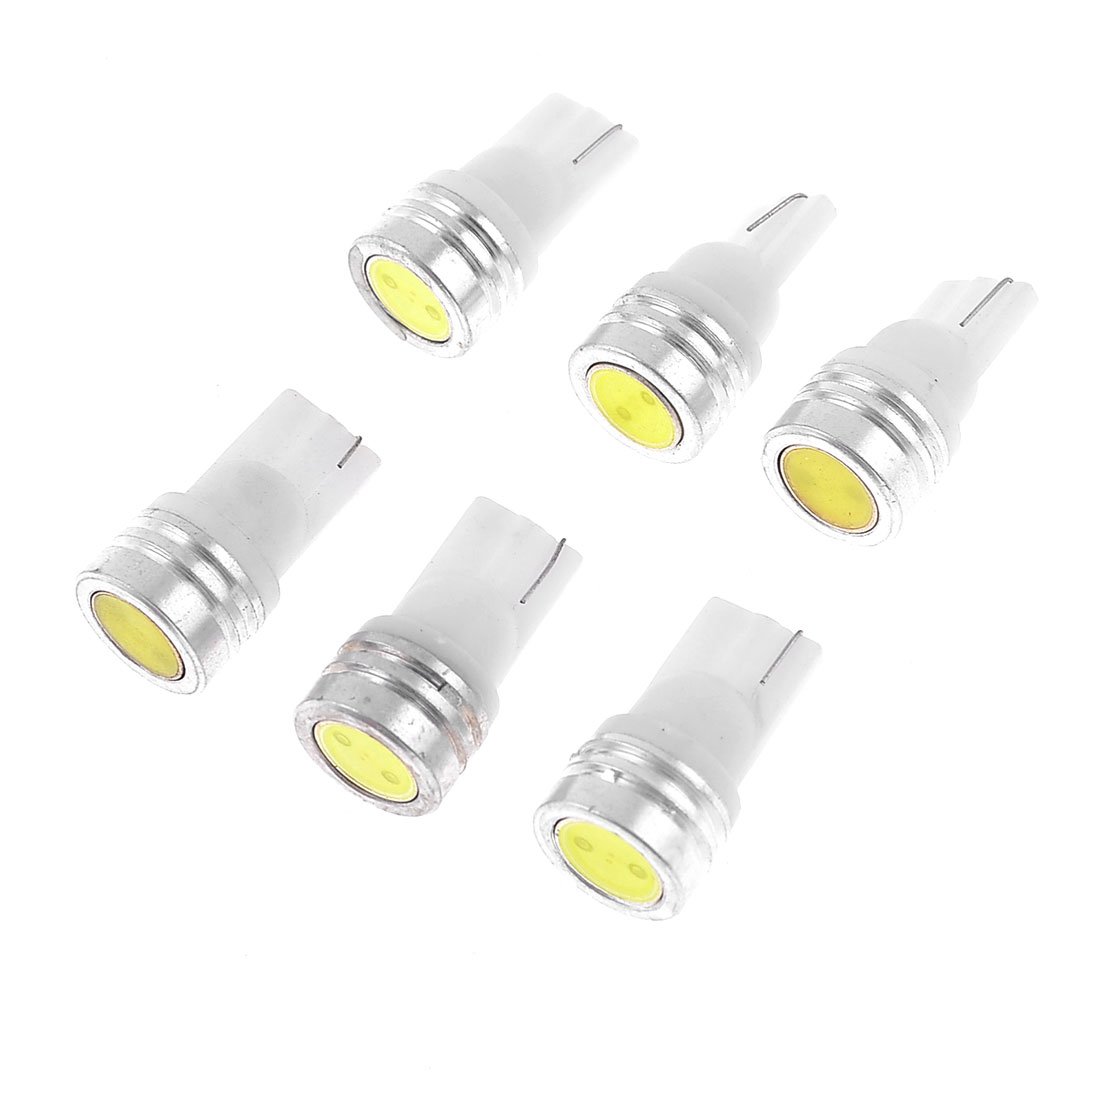 6 Pcs T10 168 White LED Bulbs Interior Gauge Light 12V 1W for Automobile